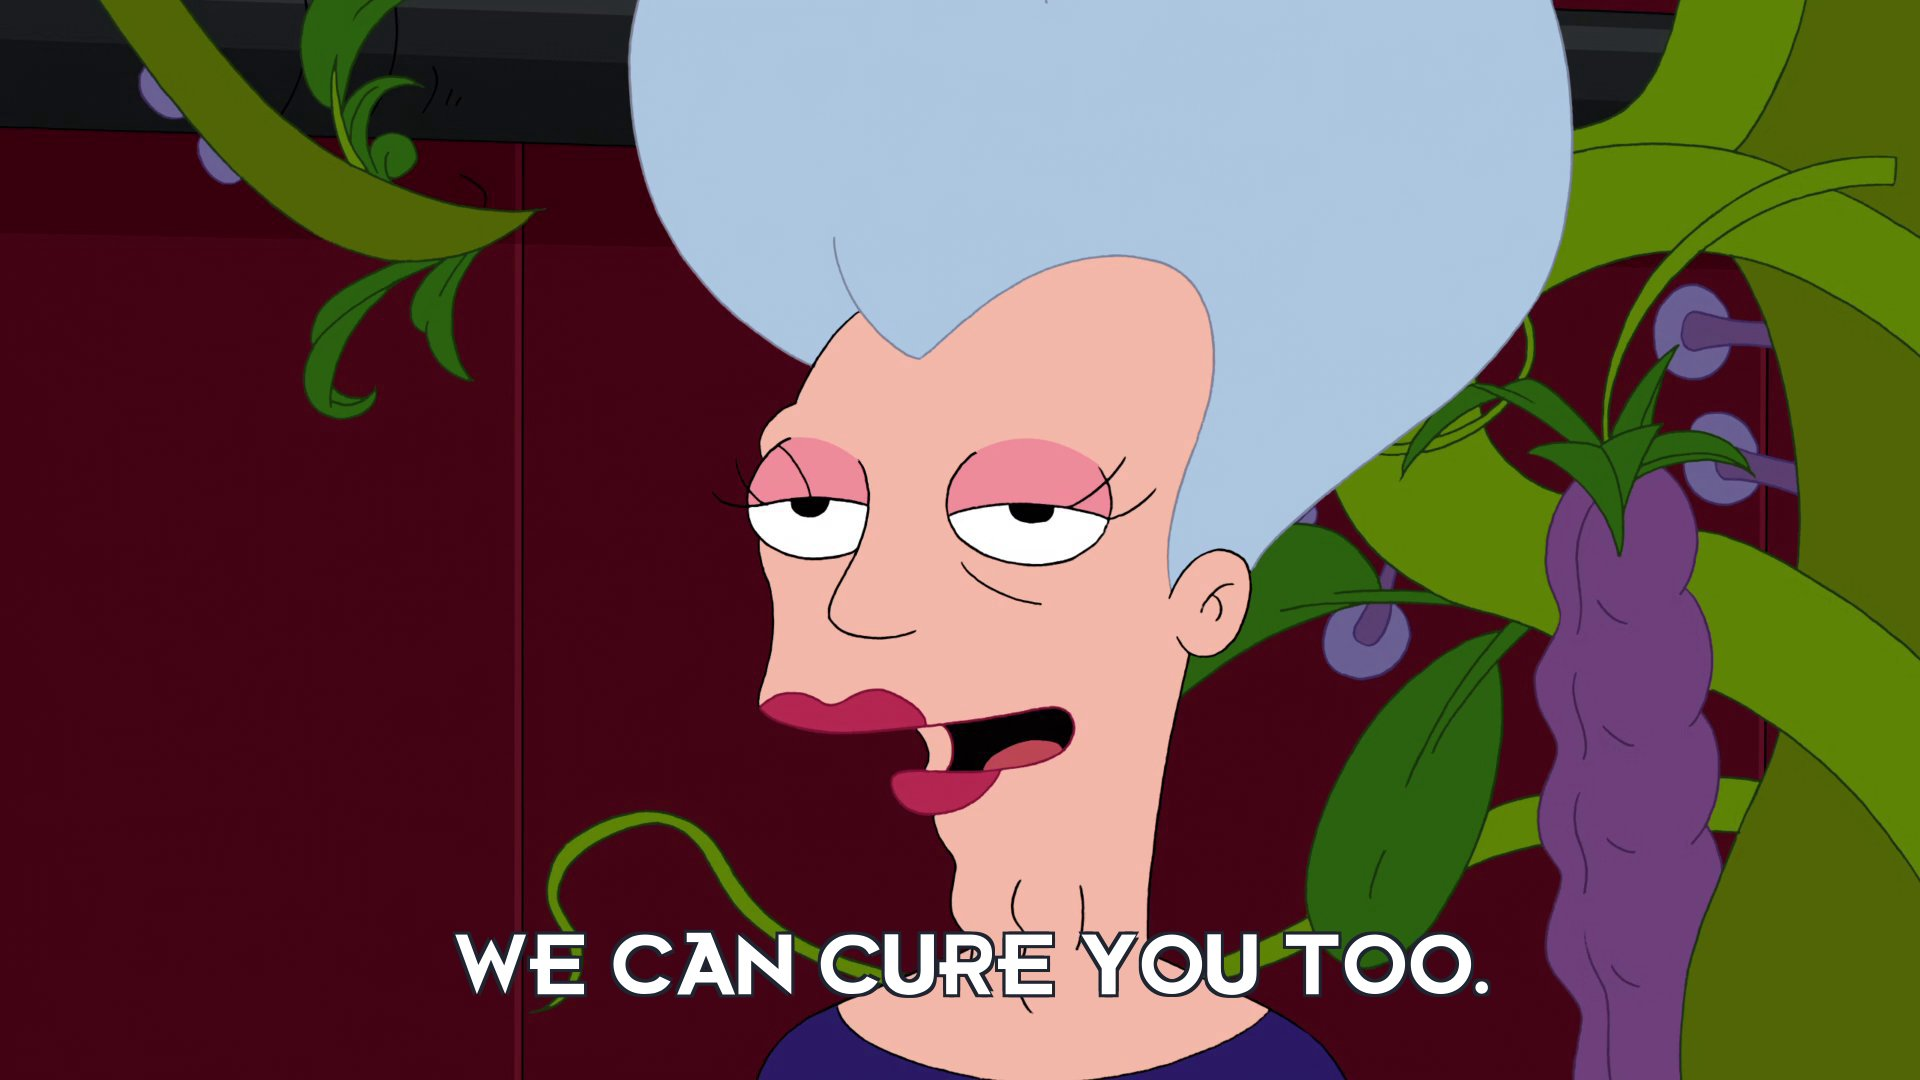 Mom: We can cure you too.